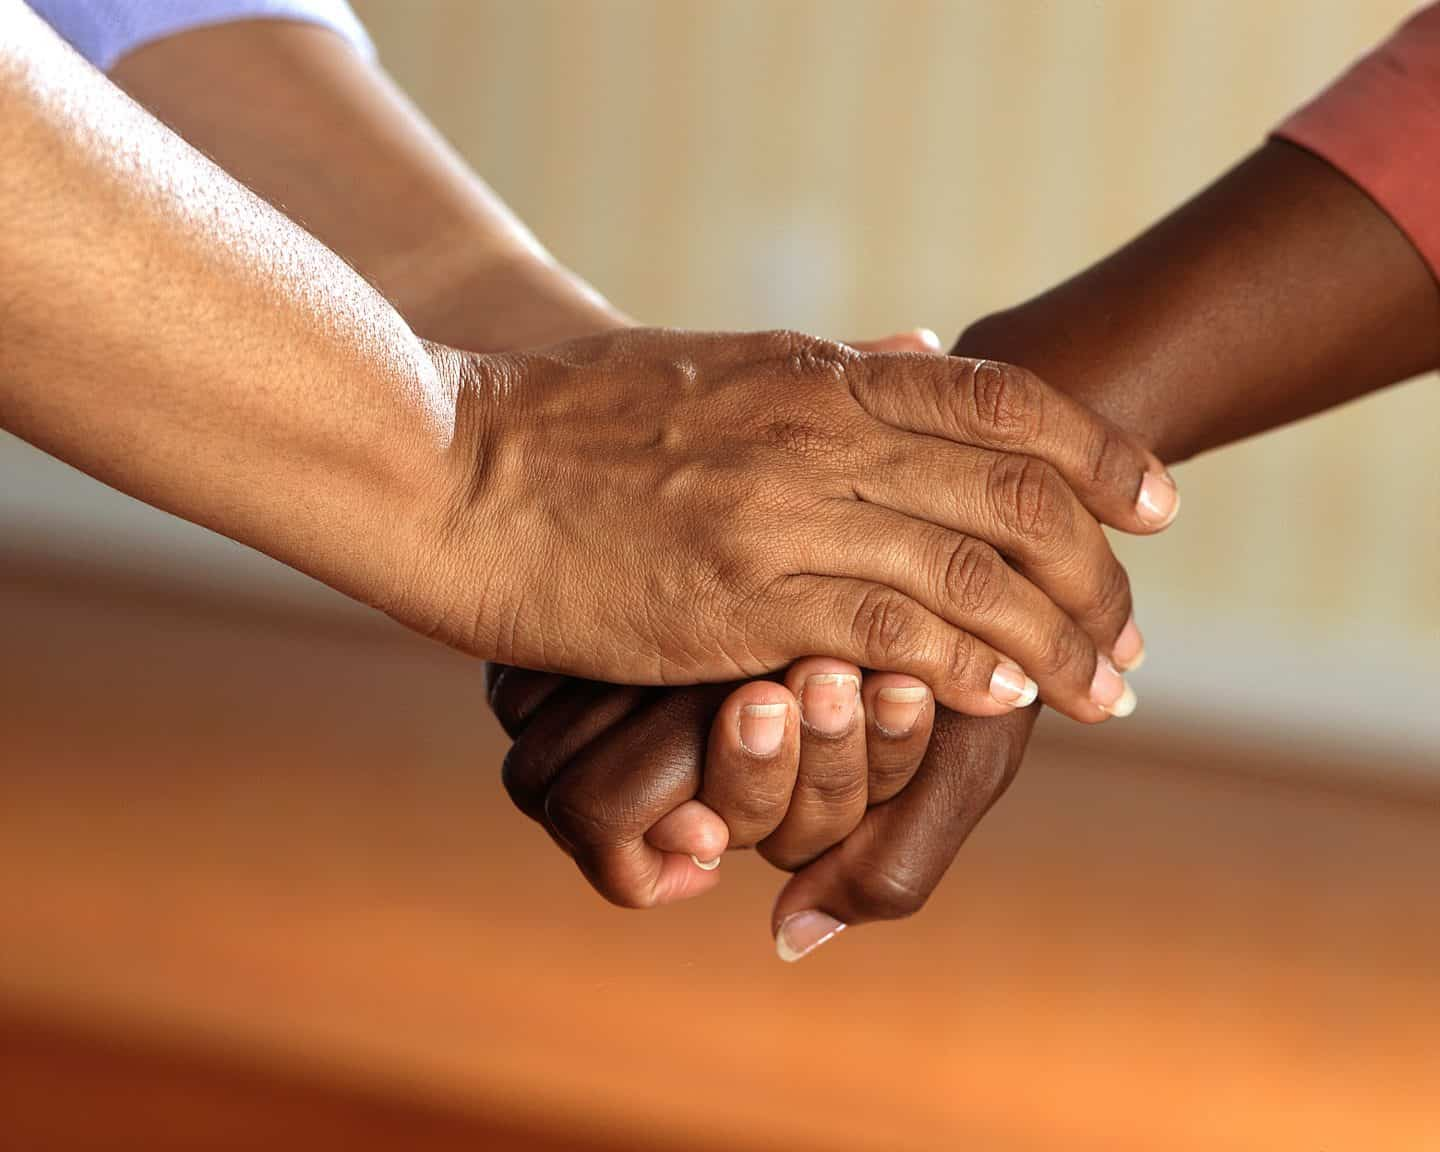 4 Things To Know When Caring For Someone With Dementia